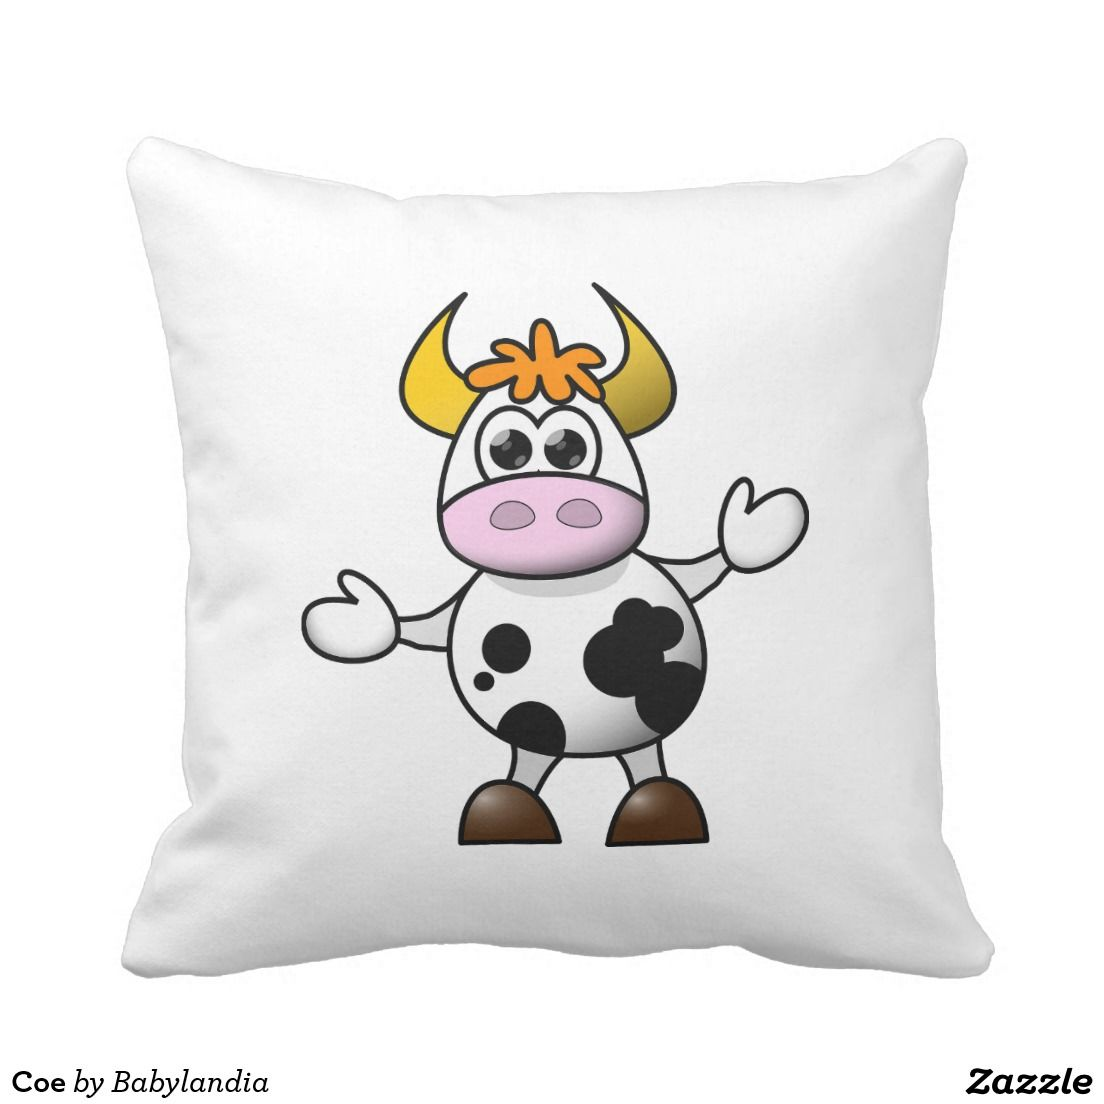 Coe Throw Pillow Cross Paintings Diamond Mosaic Cow